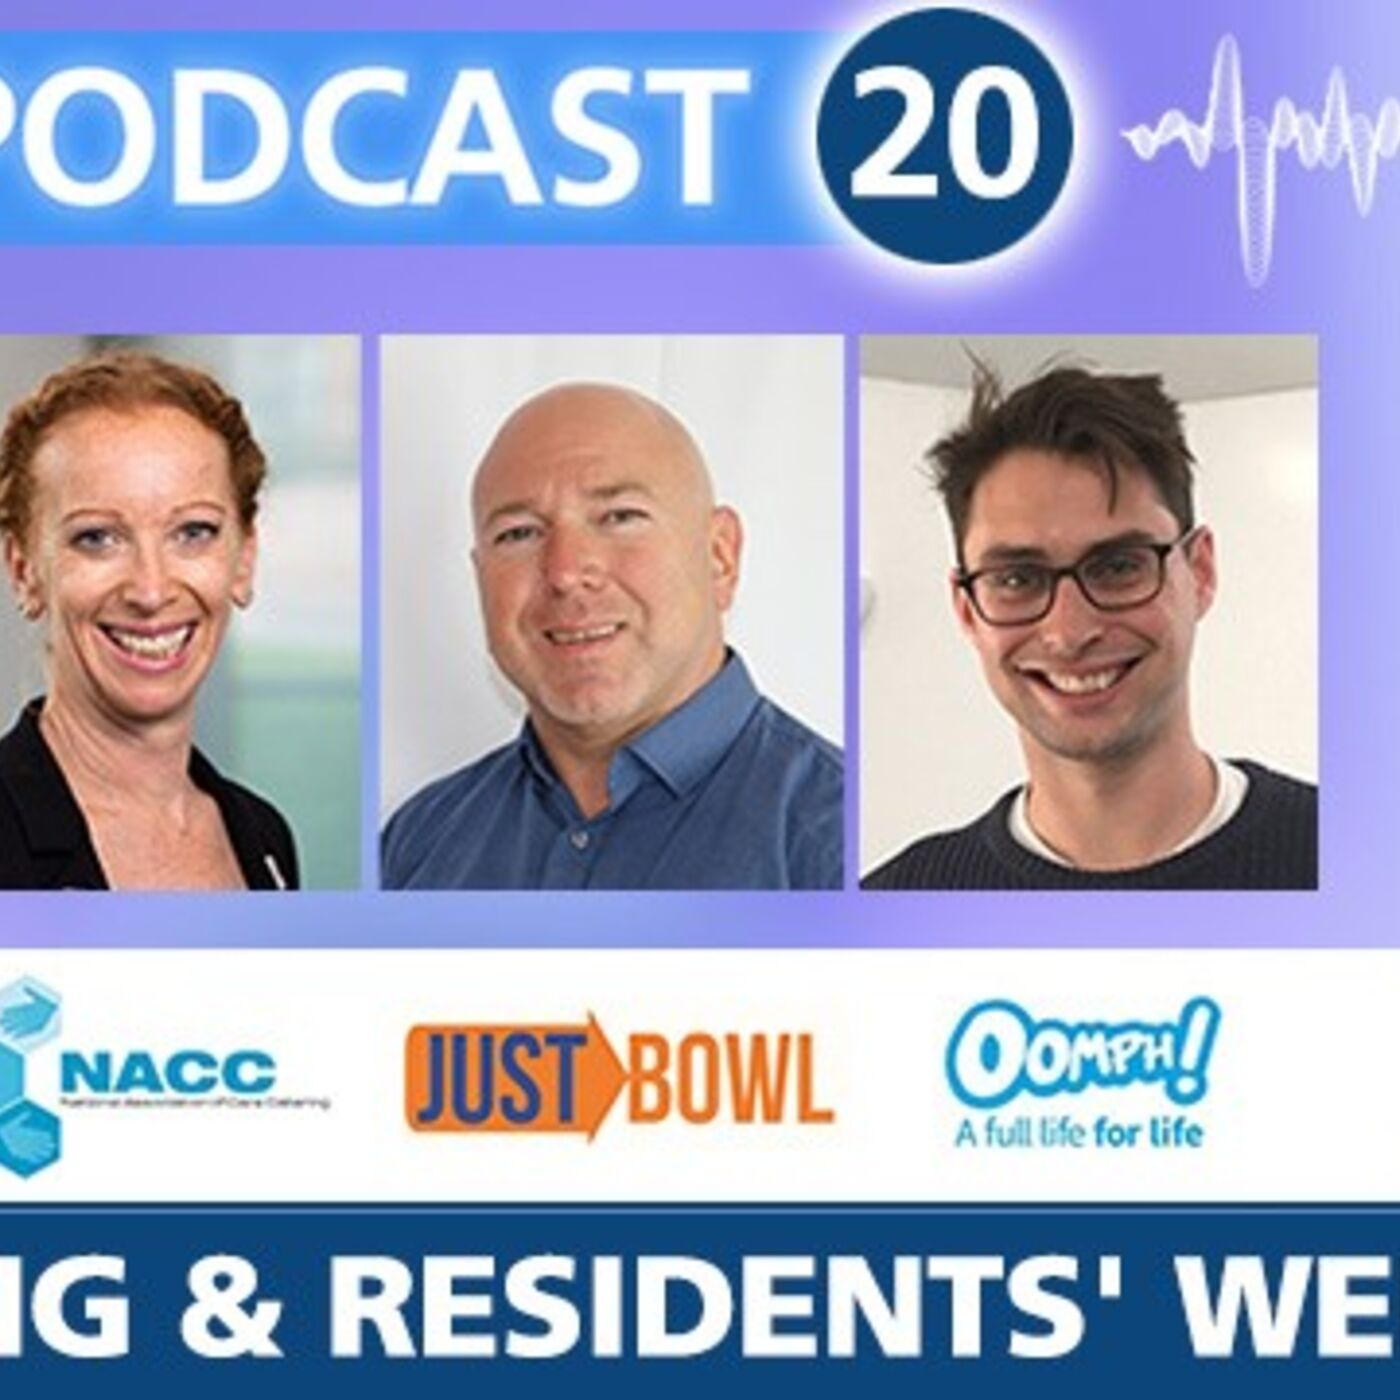 Catering & Residents' Wellbeing - a podcast special from Care Home Management